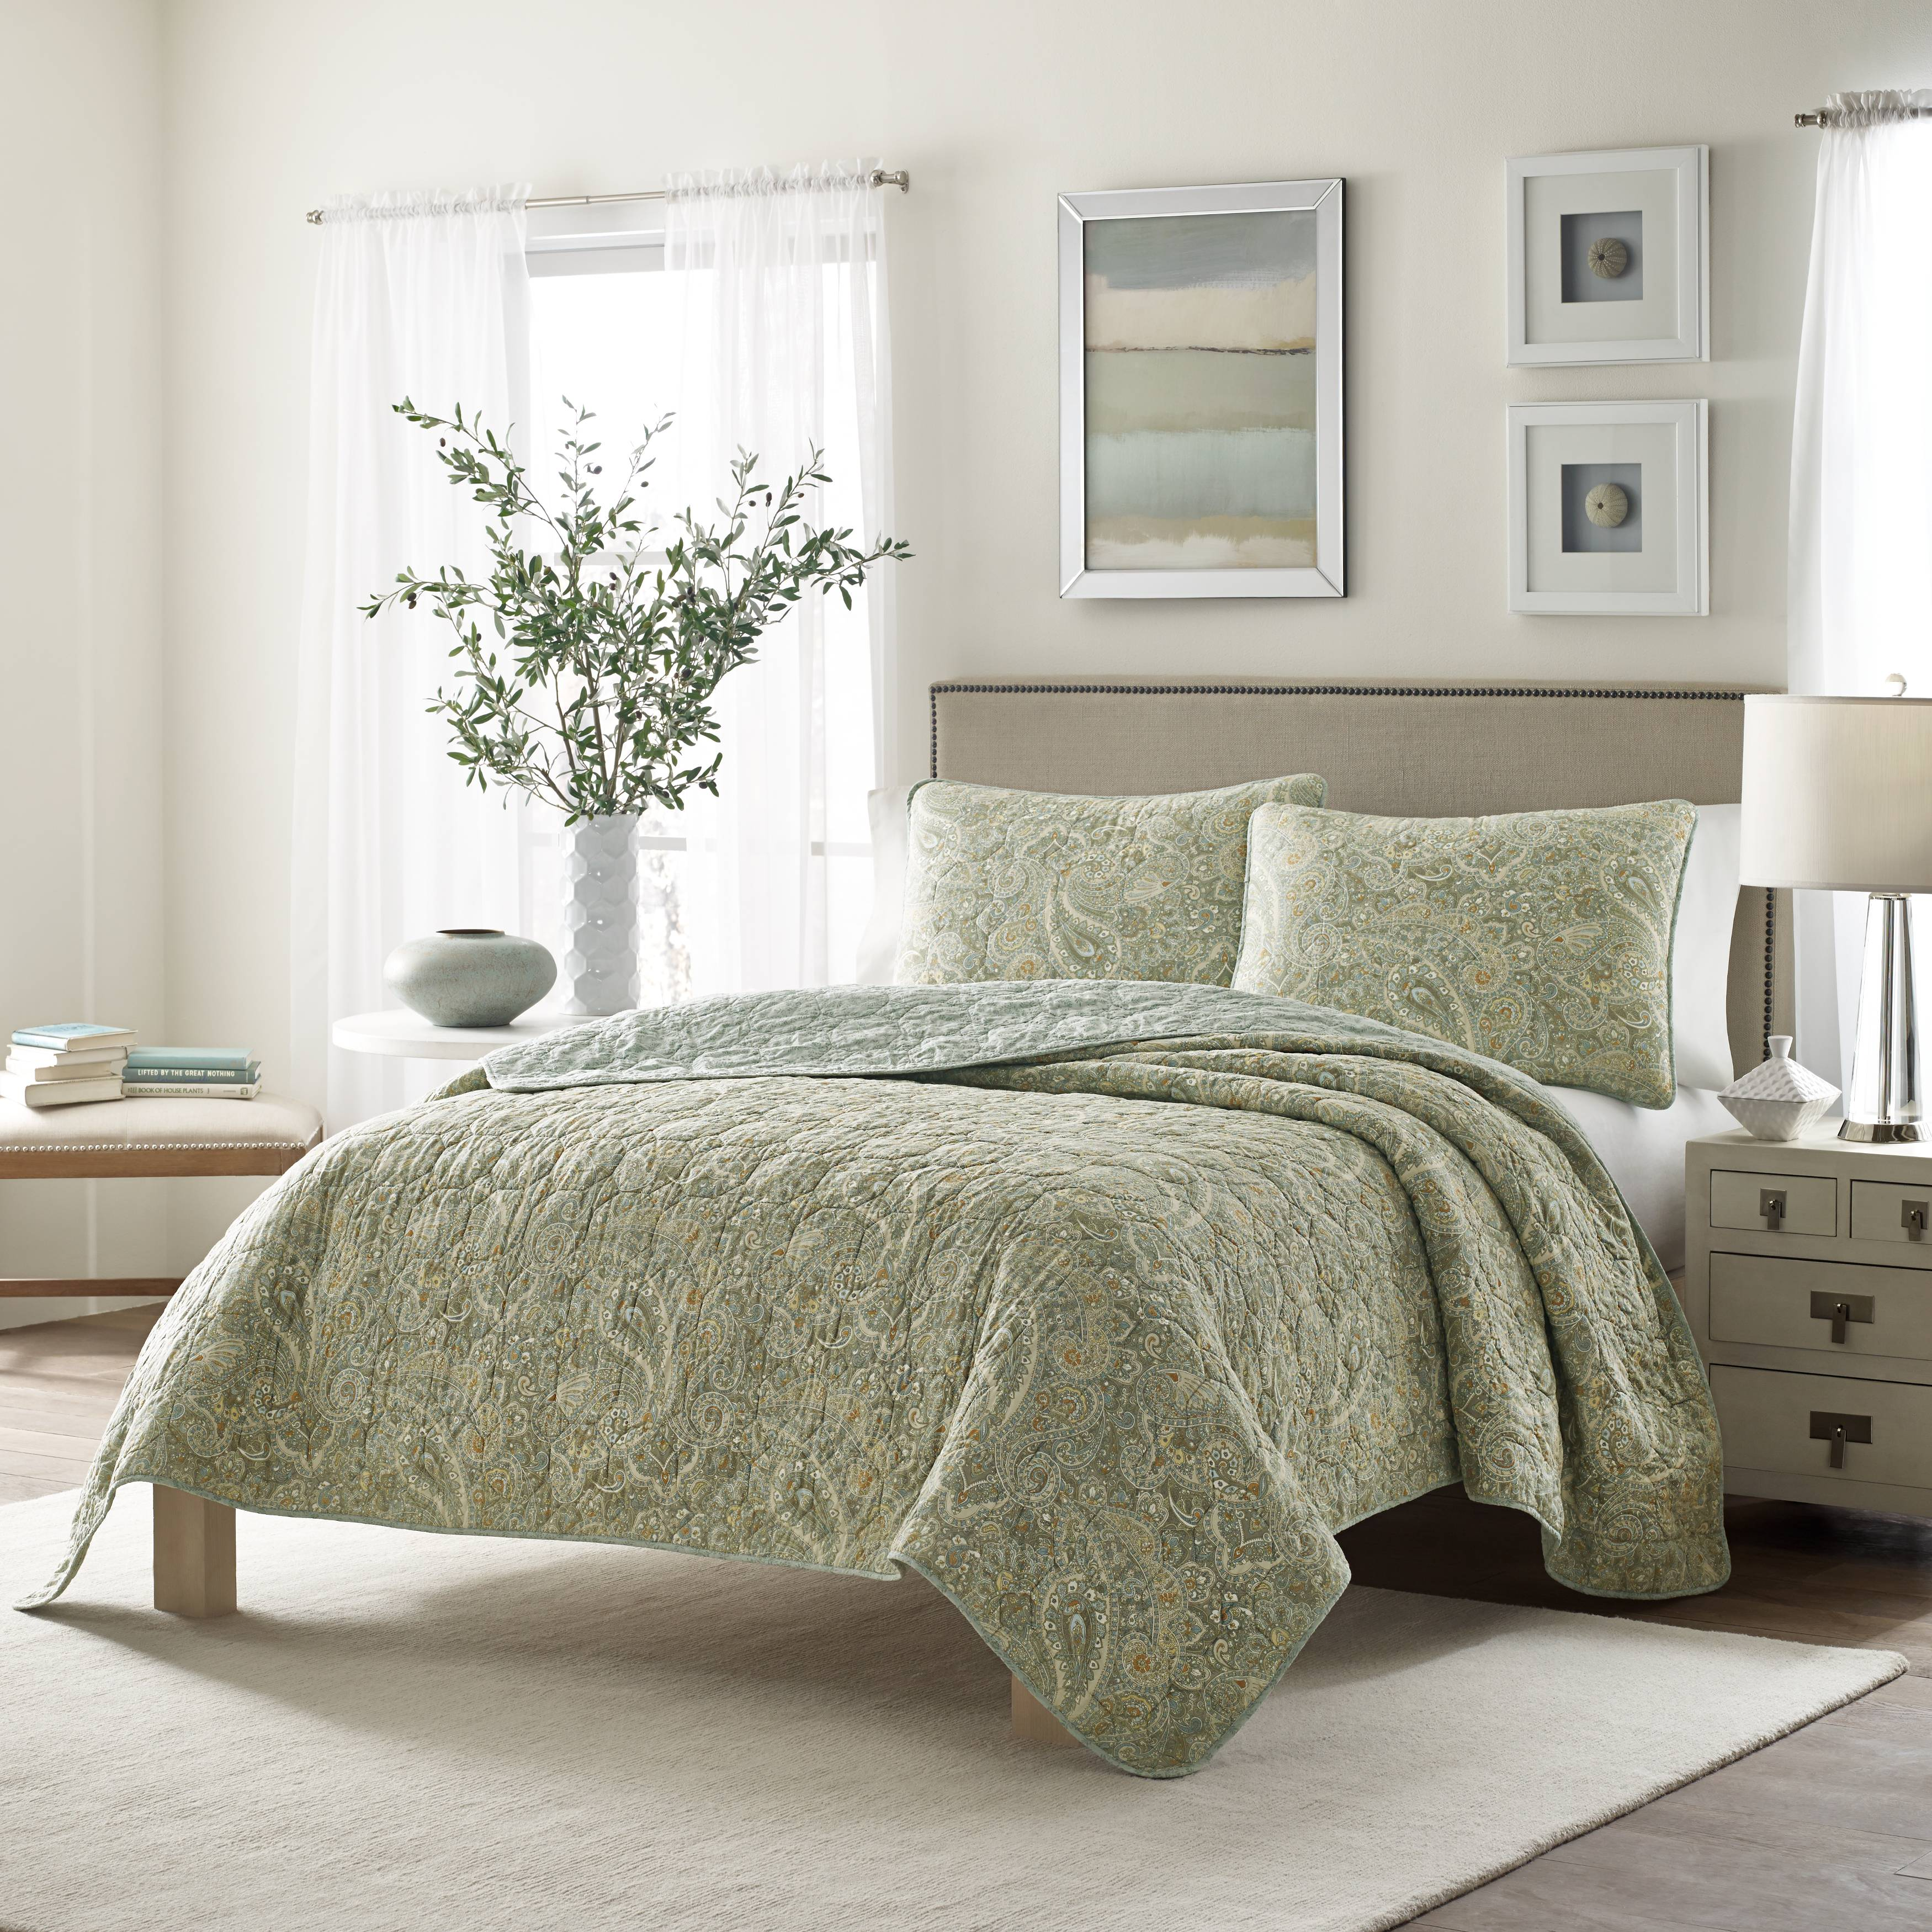 Stone Cottage Emilia Quilt Set, Full/Queen